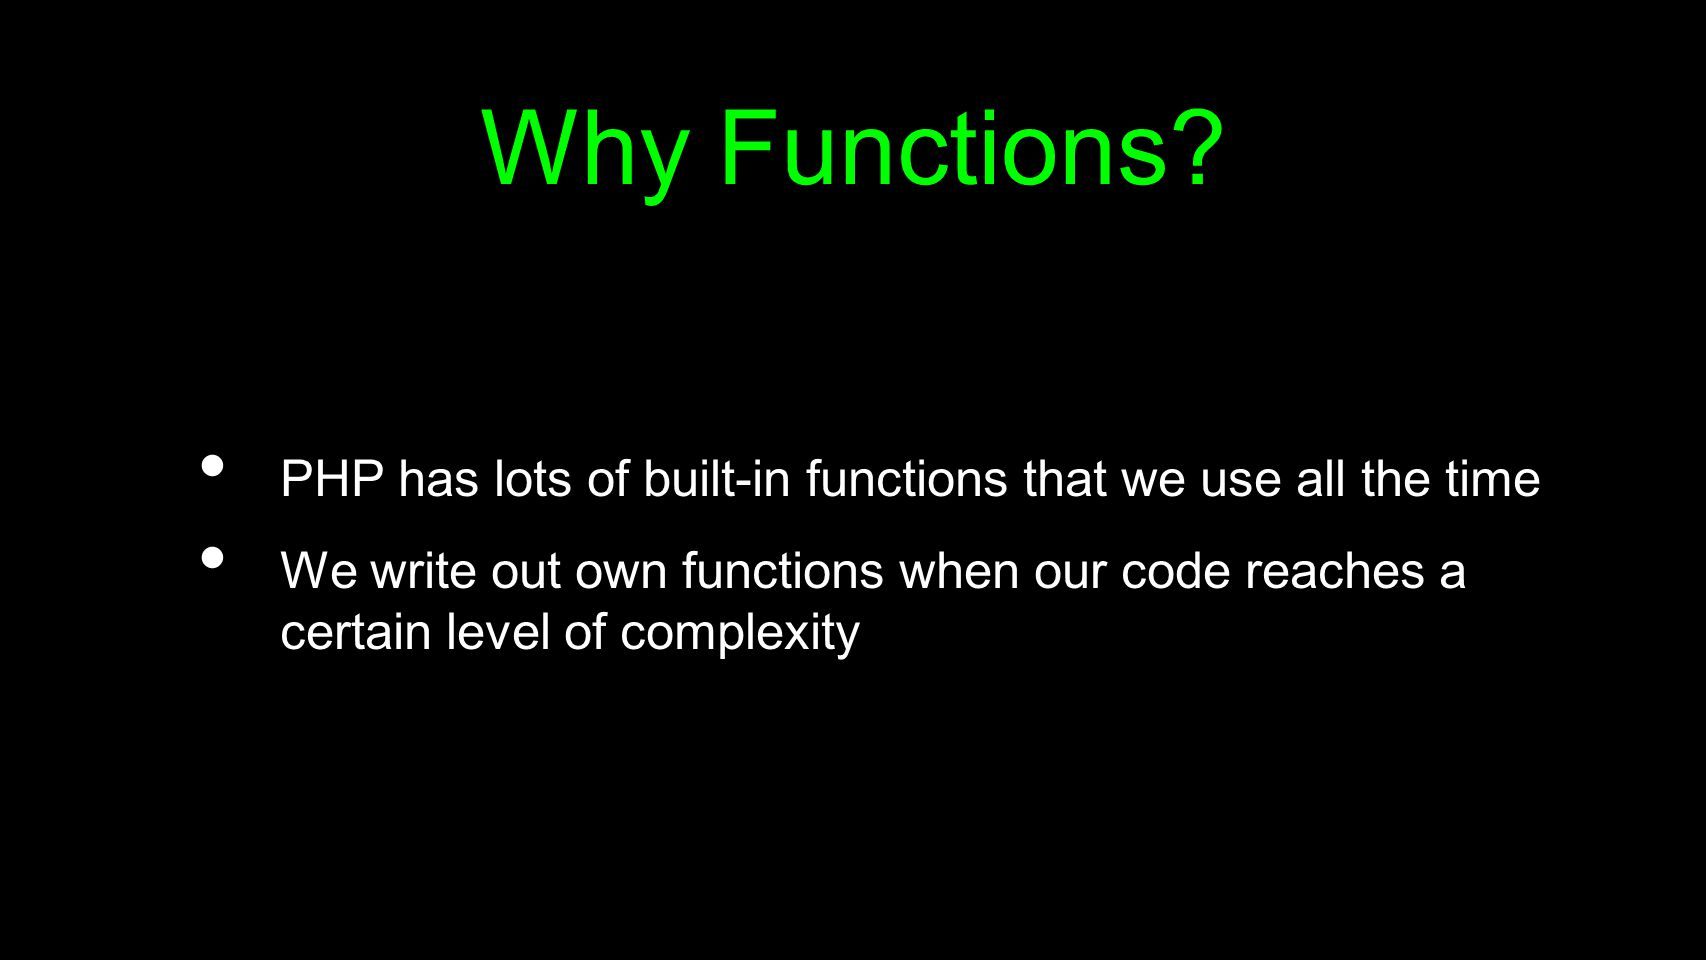 Why Functions PHP has lots of built-in functions that we use all the time.